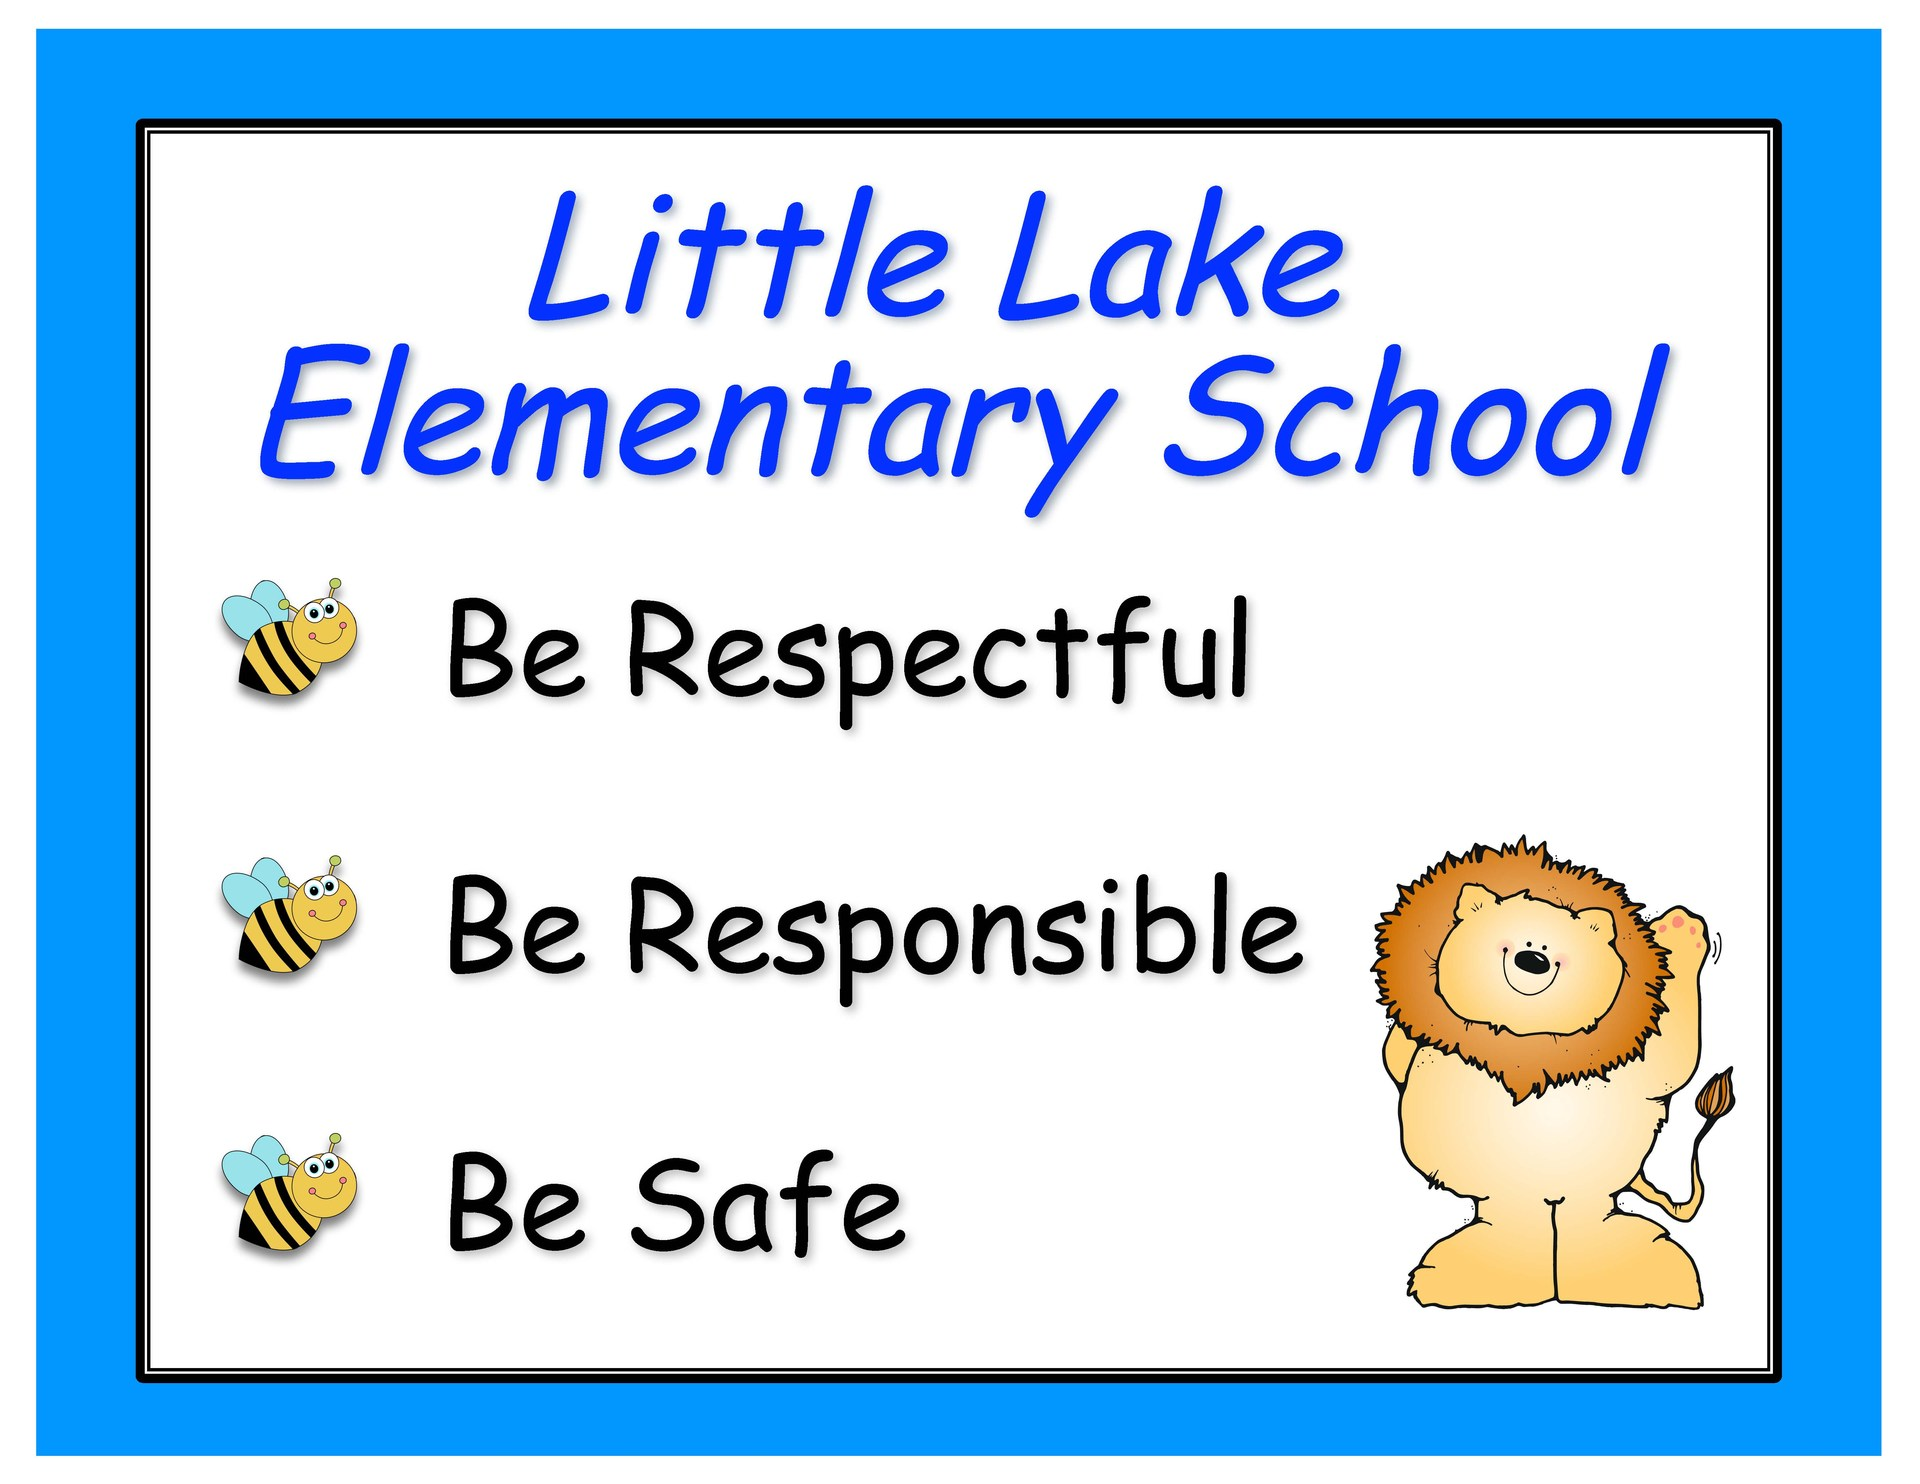 School Rules at Little Lake are to be Respectful, Be Responsible, and Be Safe